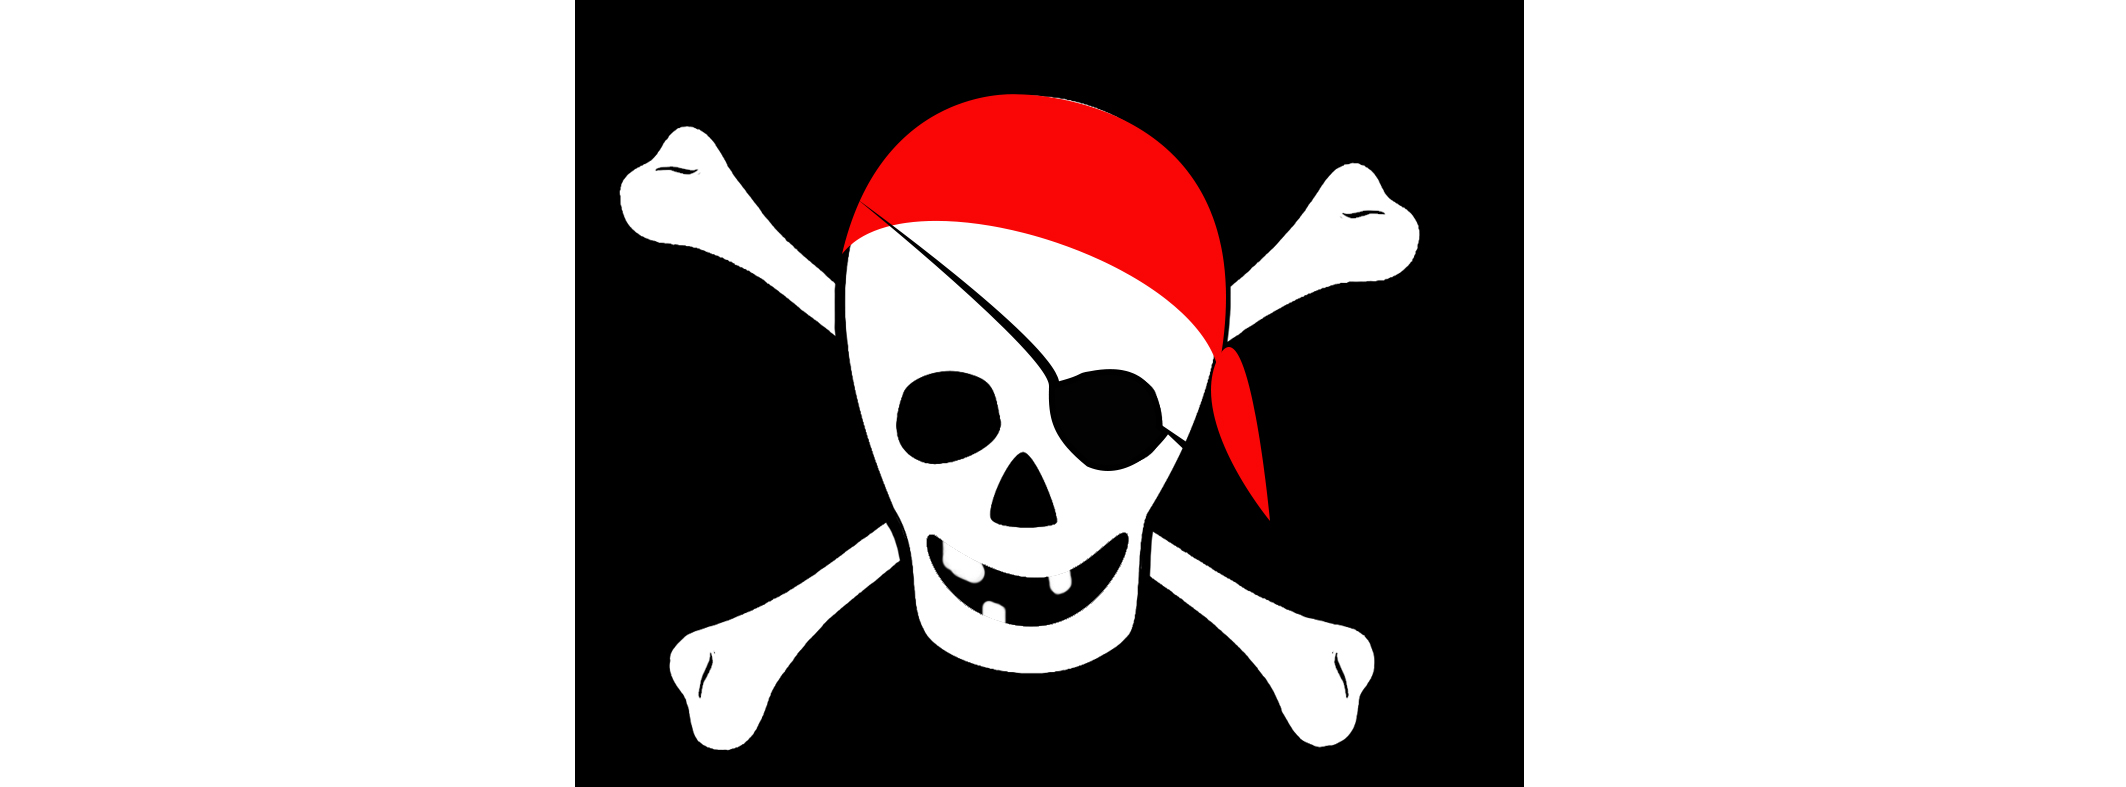 pirate cross bones and skull for tin topping game